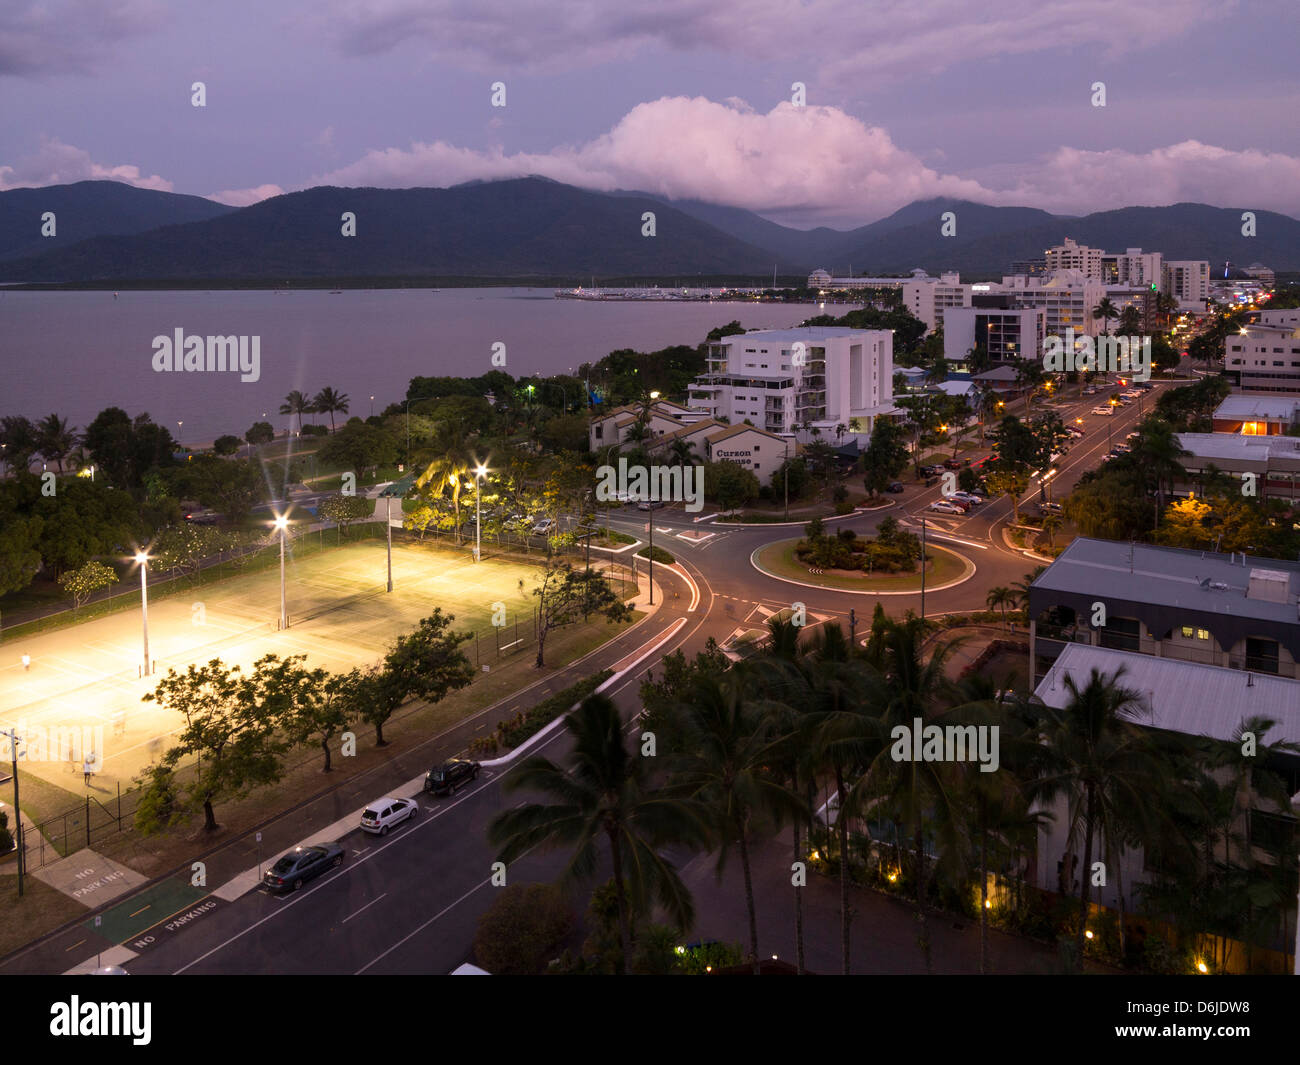 Waterfront and view towards city centre at dusk from south, Cairns, North Queensland, Australia, Pacific Stock Photo